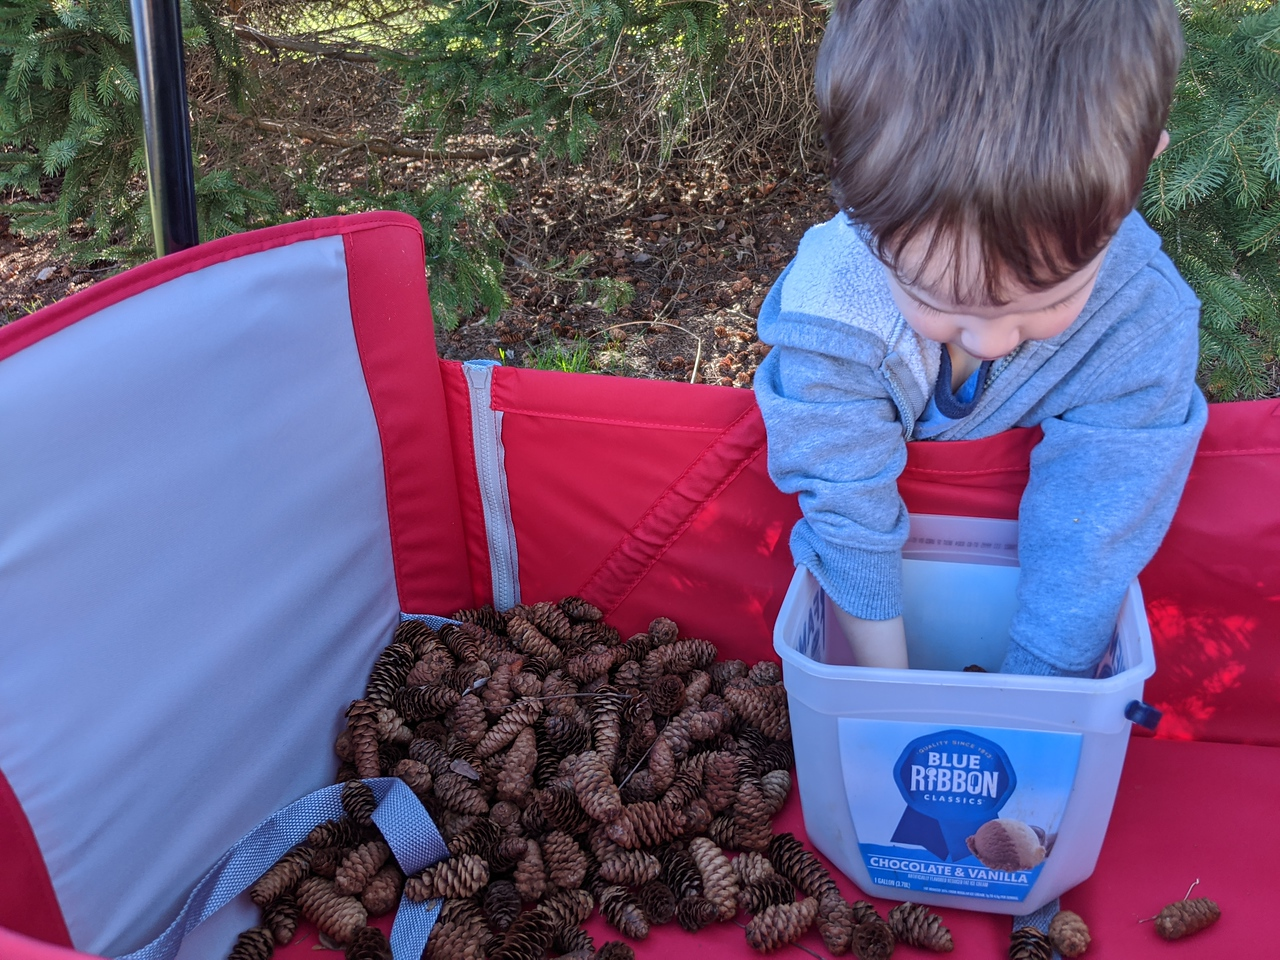 Collecting pine cones in our yard, March 25, 2020